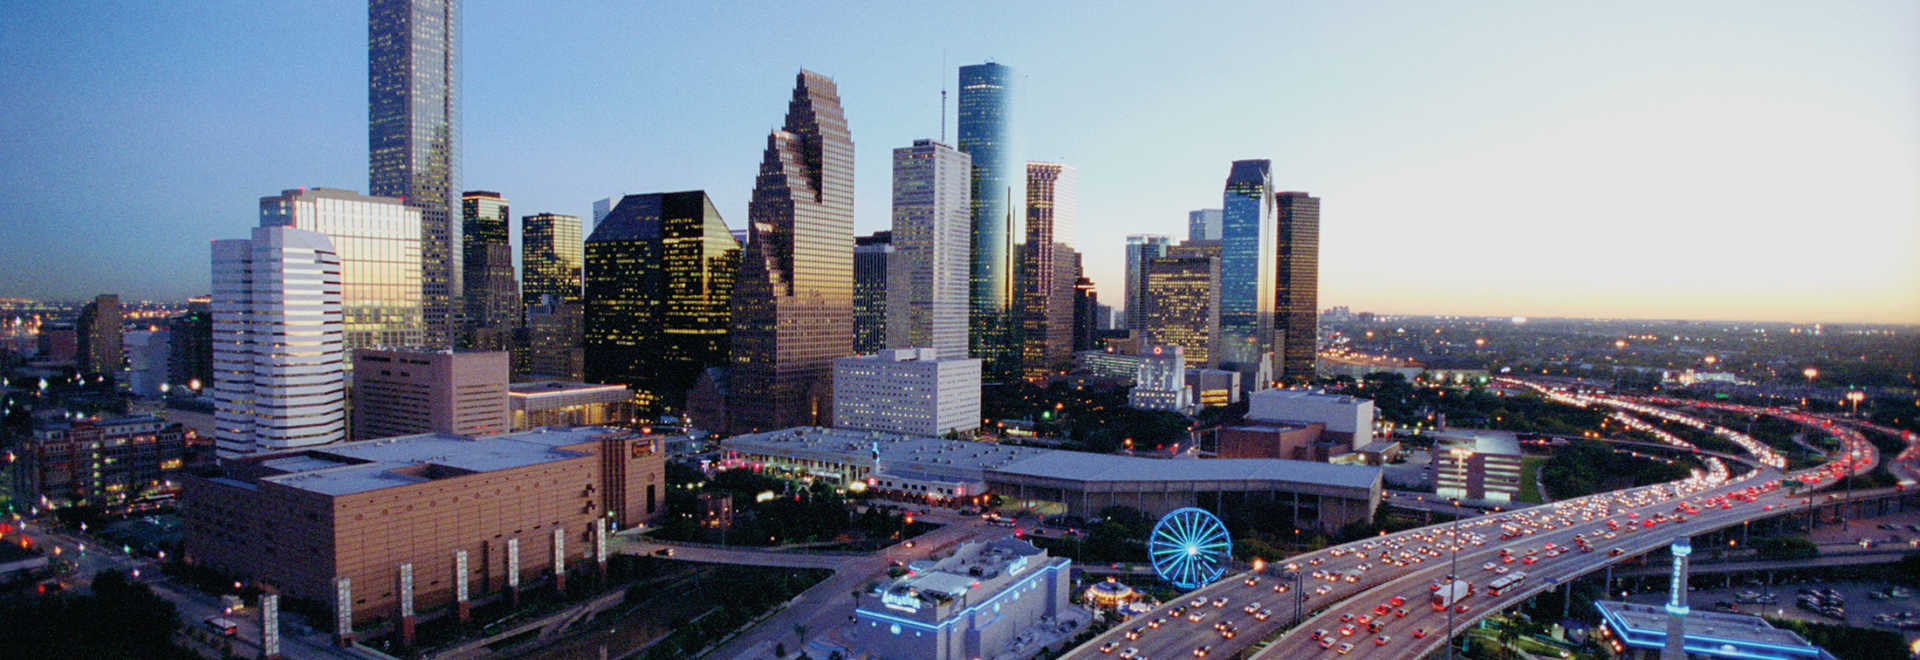 Online Visitors Guide – Tourist Attractions Map In Houston Texas